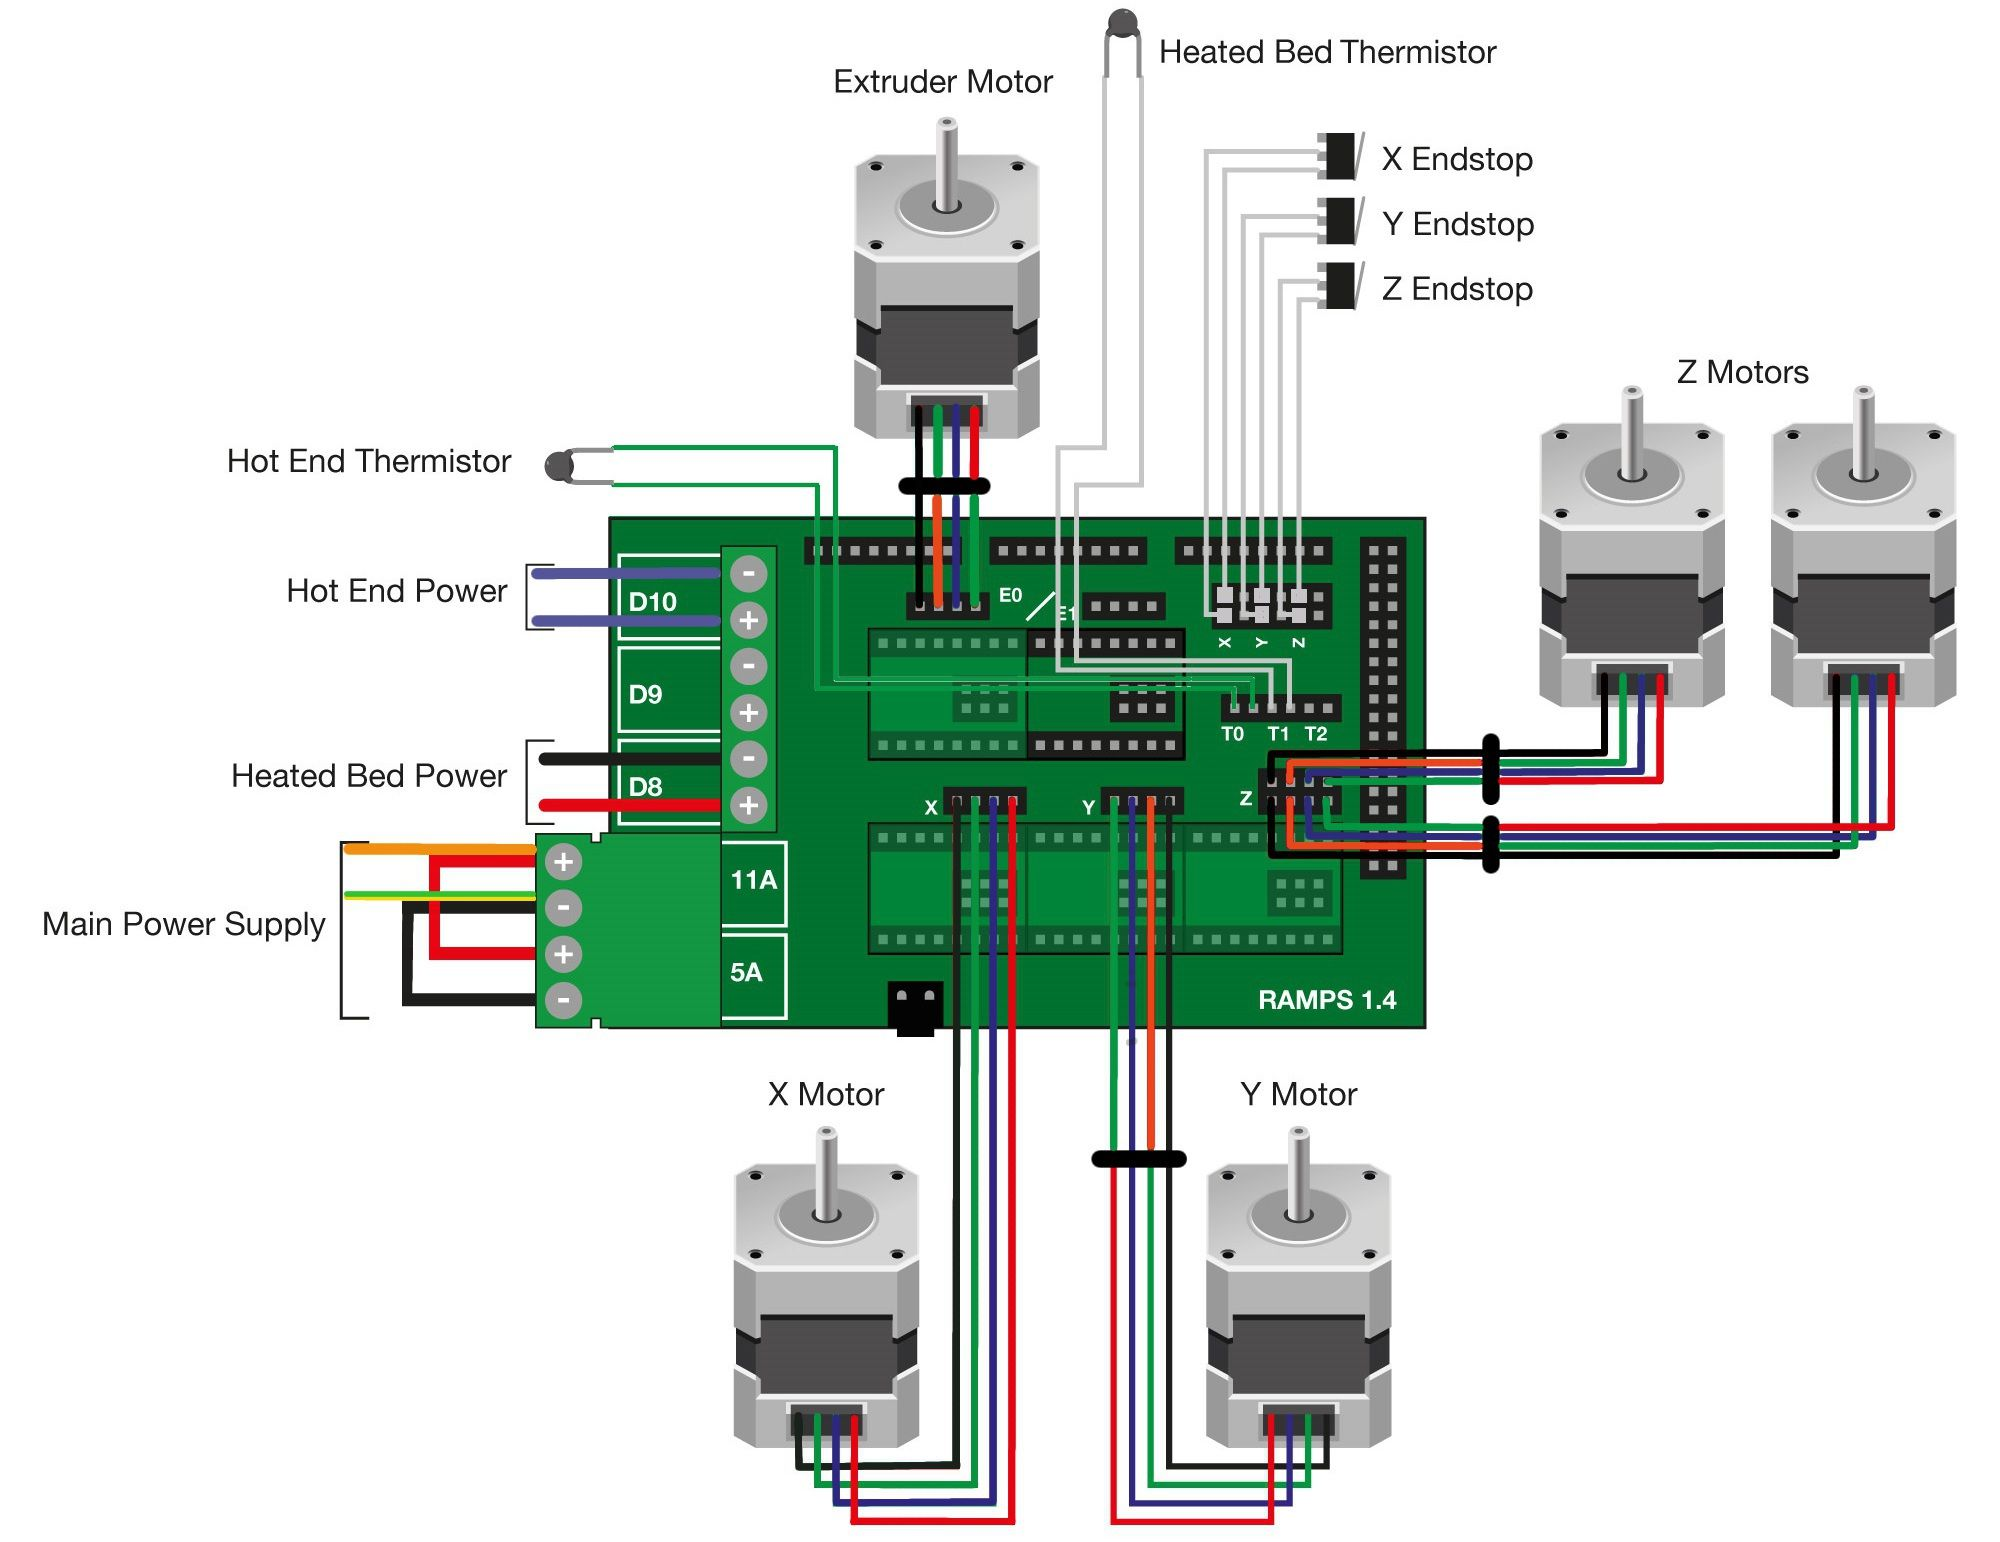 A good example of a Ramps 1.4 electronics diagram.